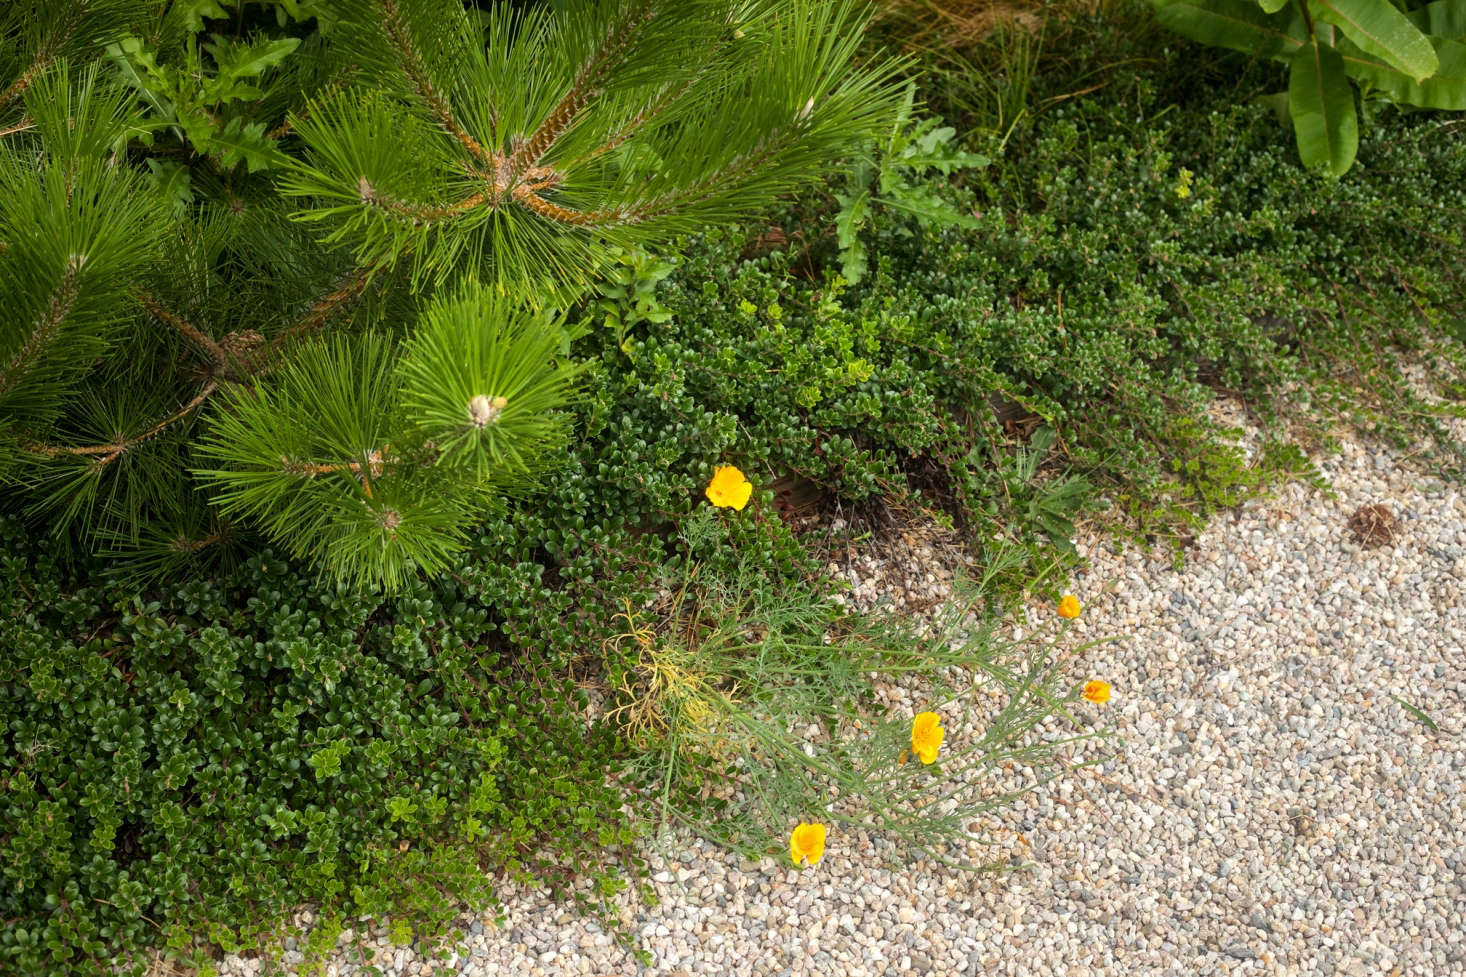 Blurred lines, Tim often softens the edges of his gardens with creeping plants, such as this native bearberry planted under a Pinus thunbergii Japanese black pine. He also likes to add a bit of &#8